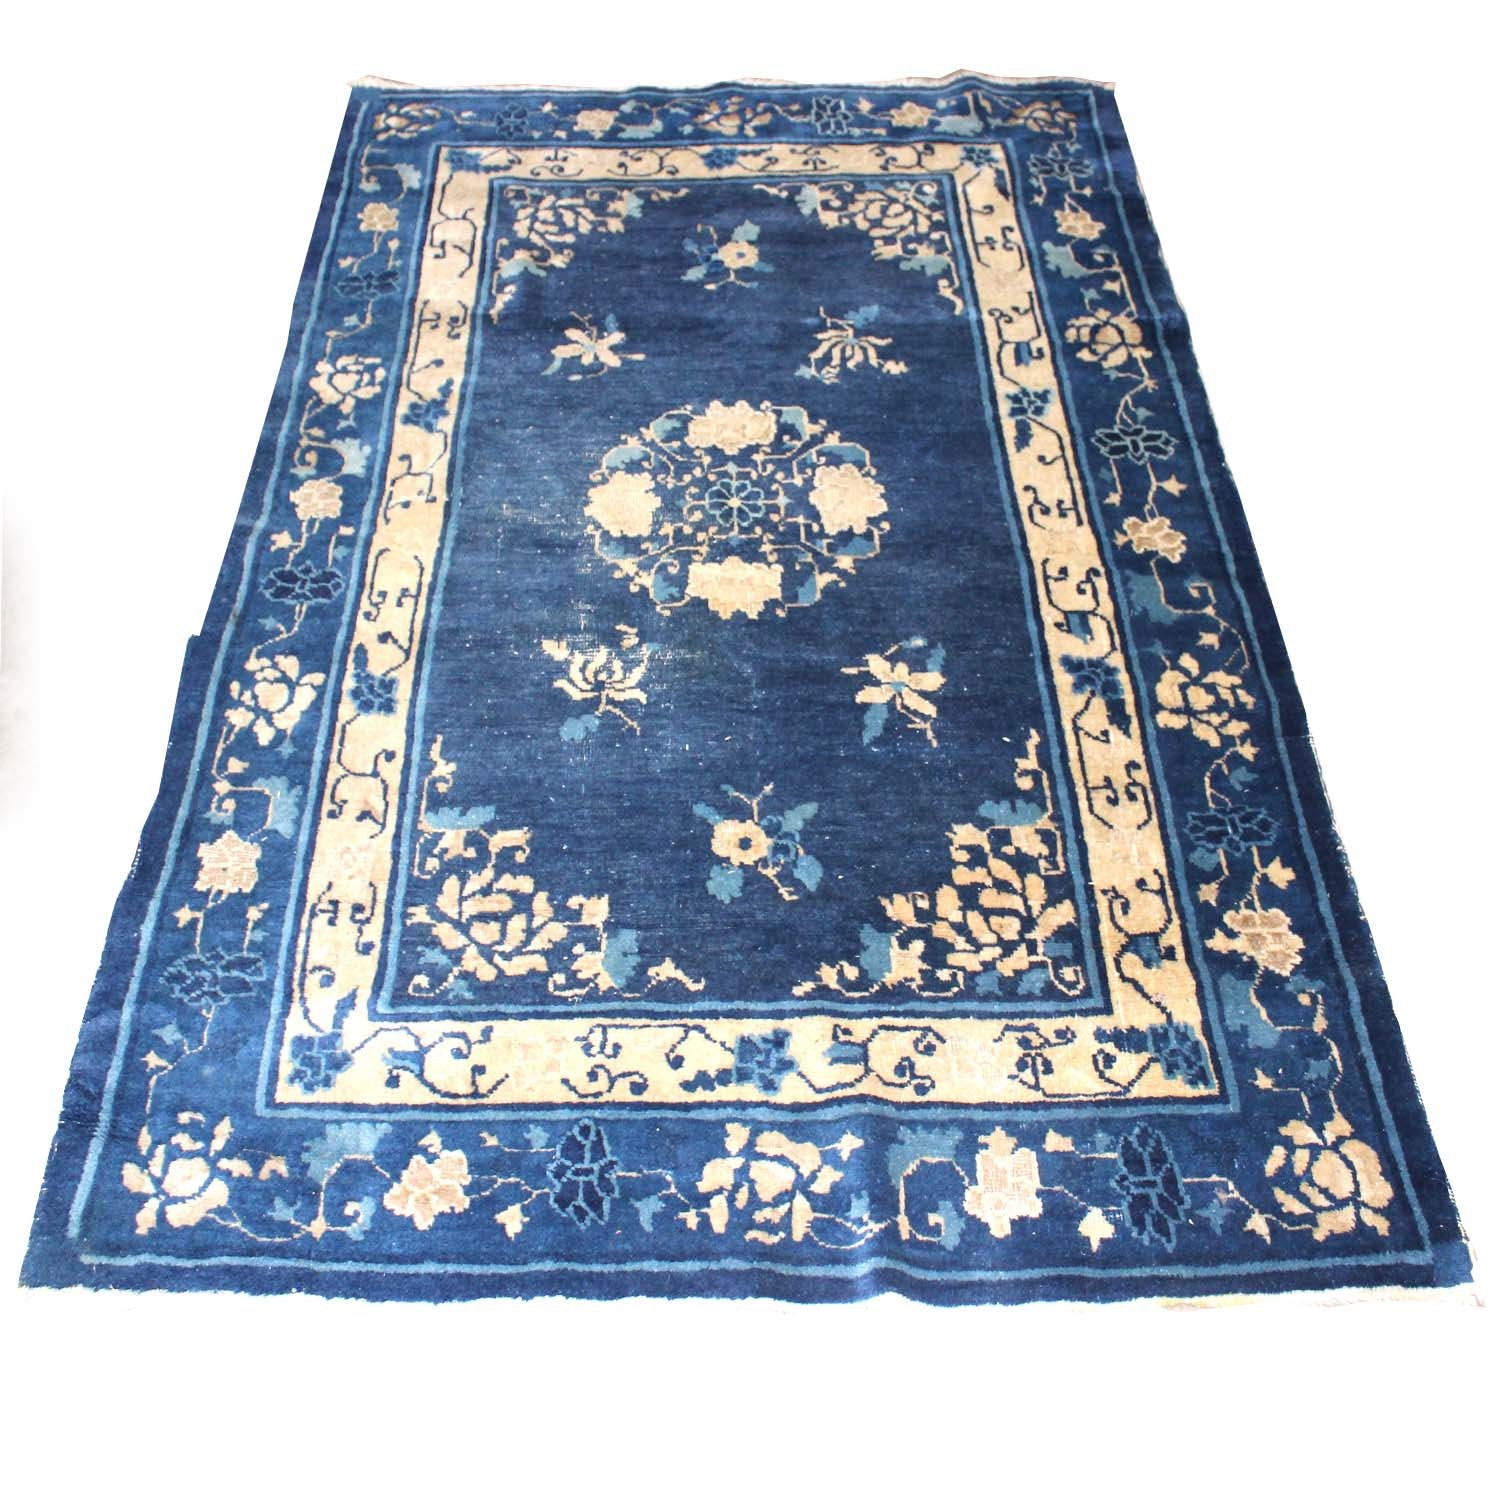 Semi-Antique Hand-Knotted Chinese Pictorial Area Rug